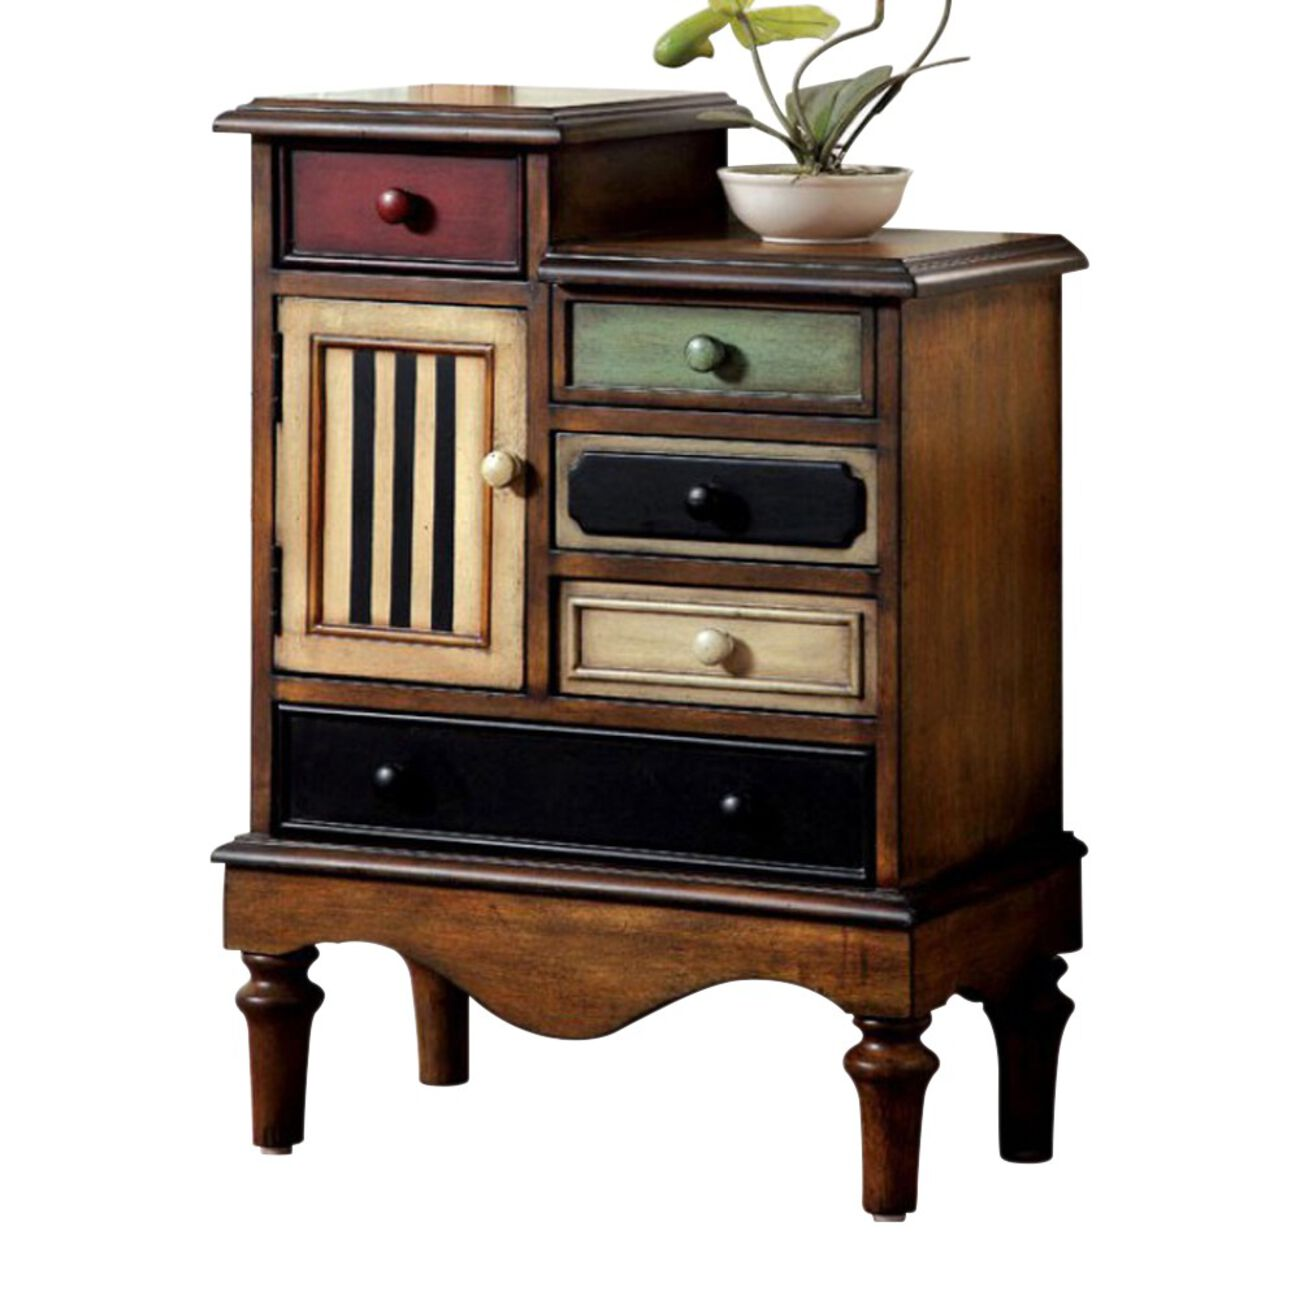 Vintage Style Accent Chest With 5 Drawers, Walnut Brown